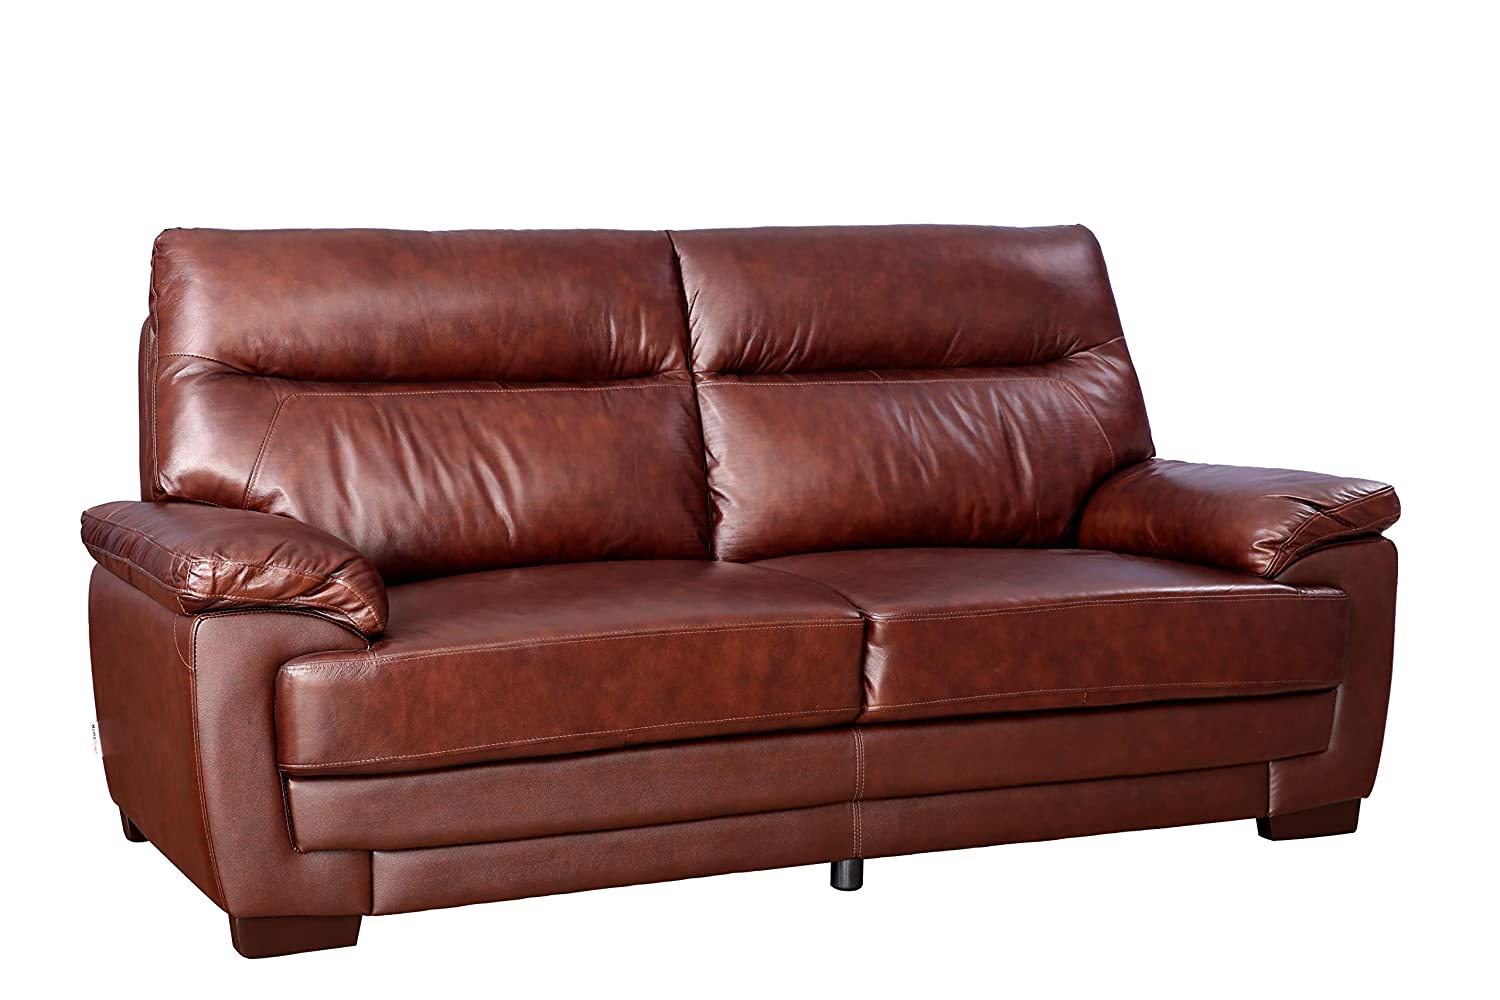 Hometown Jefferson Half Leather Solid Wood Three Seater Sofa In